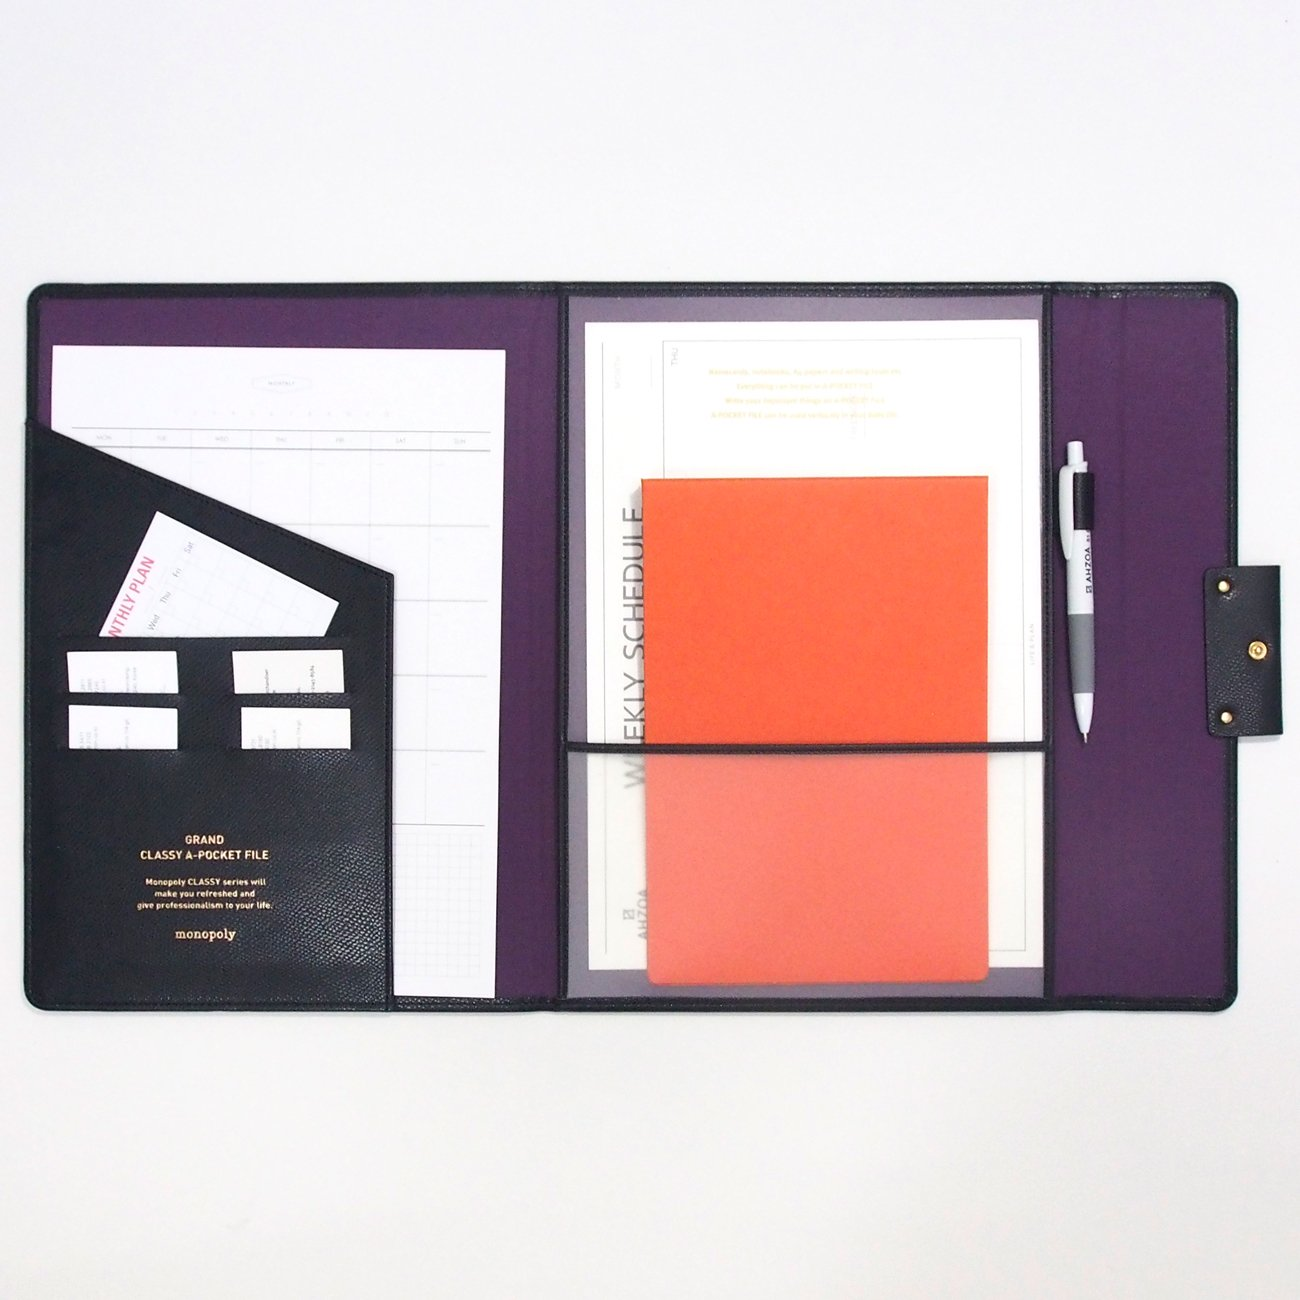 Grand Classy 8 Pockets File Holder with AHZOA Pencil (black) by Monopoly (Image #1)